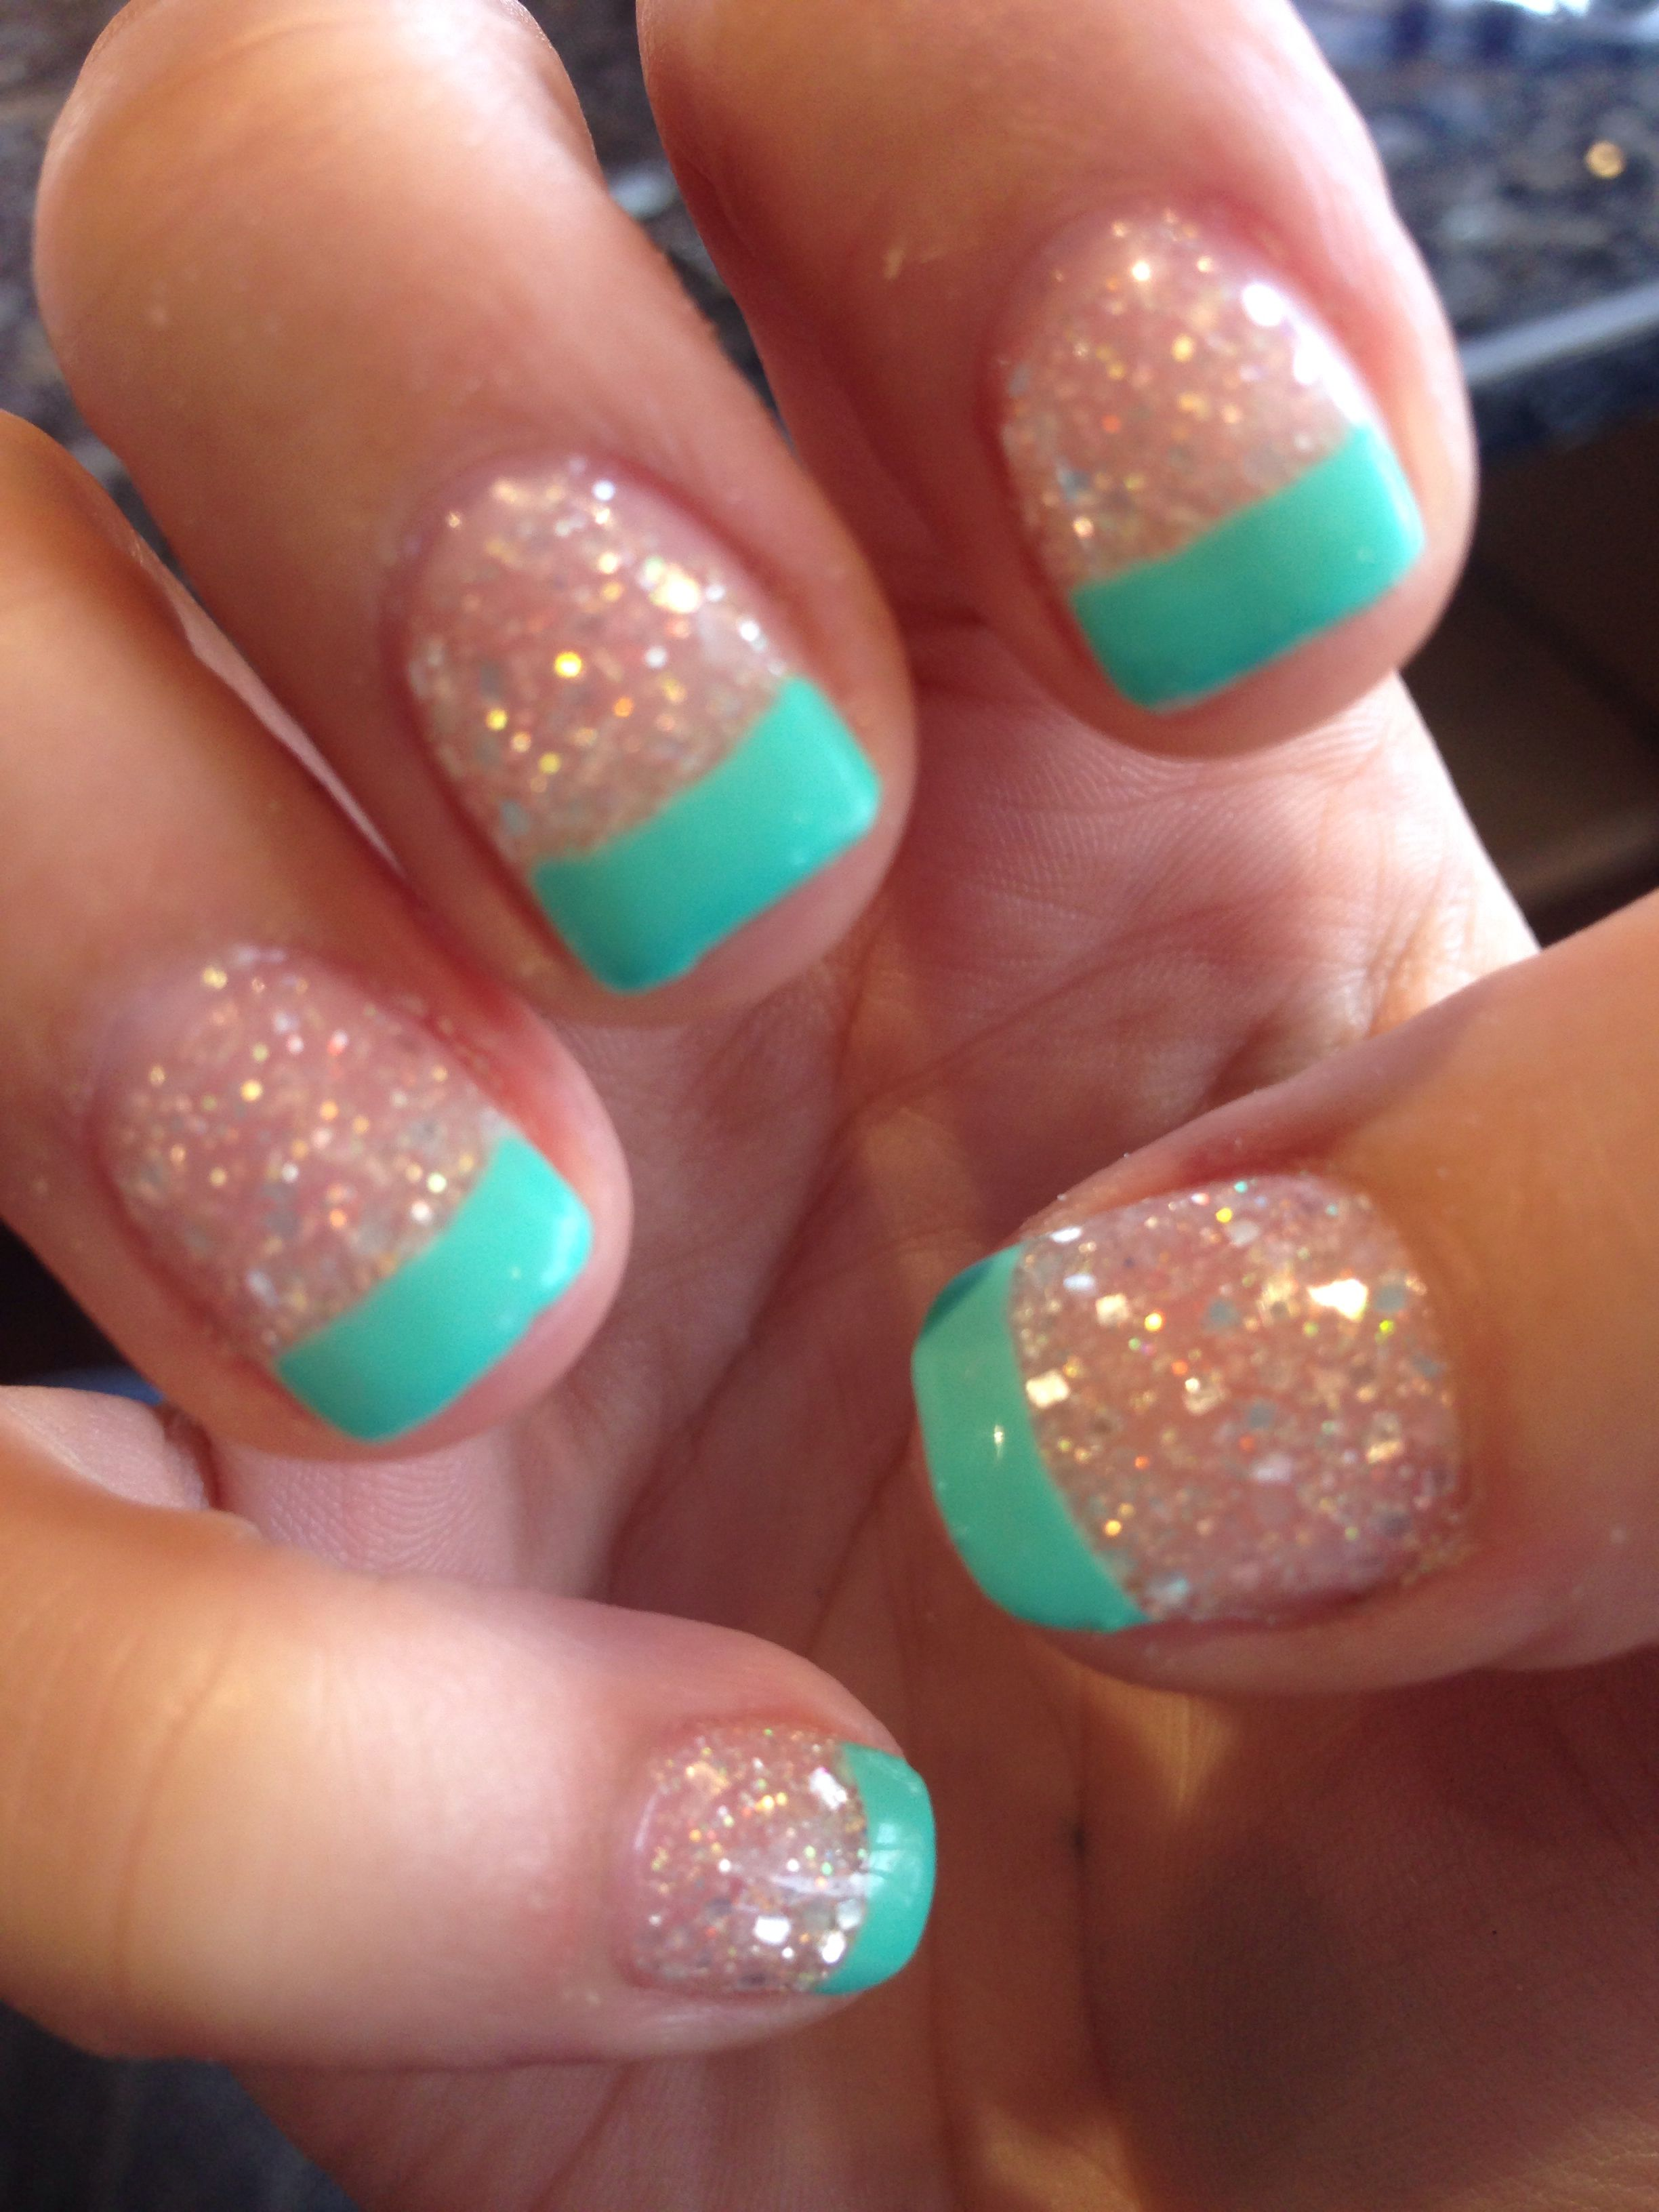 New nails crystal acrylic with tiffany blue tips nails